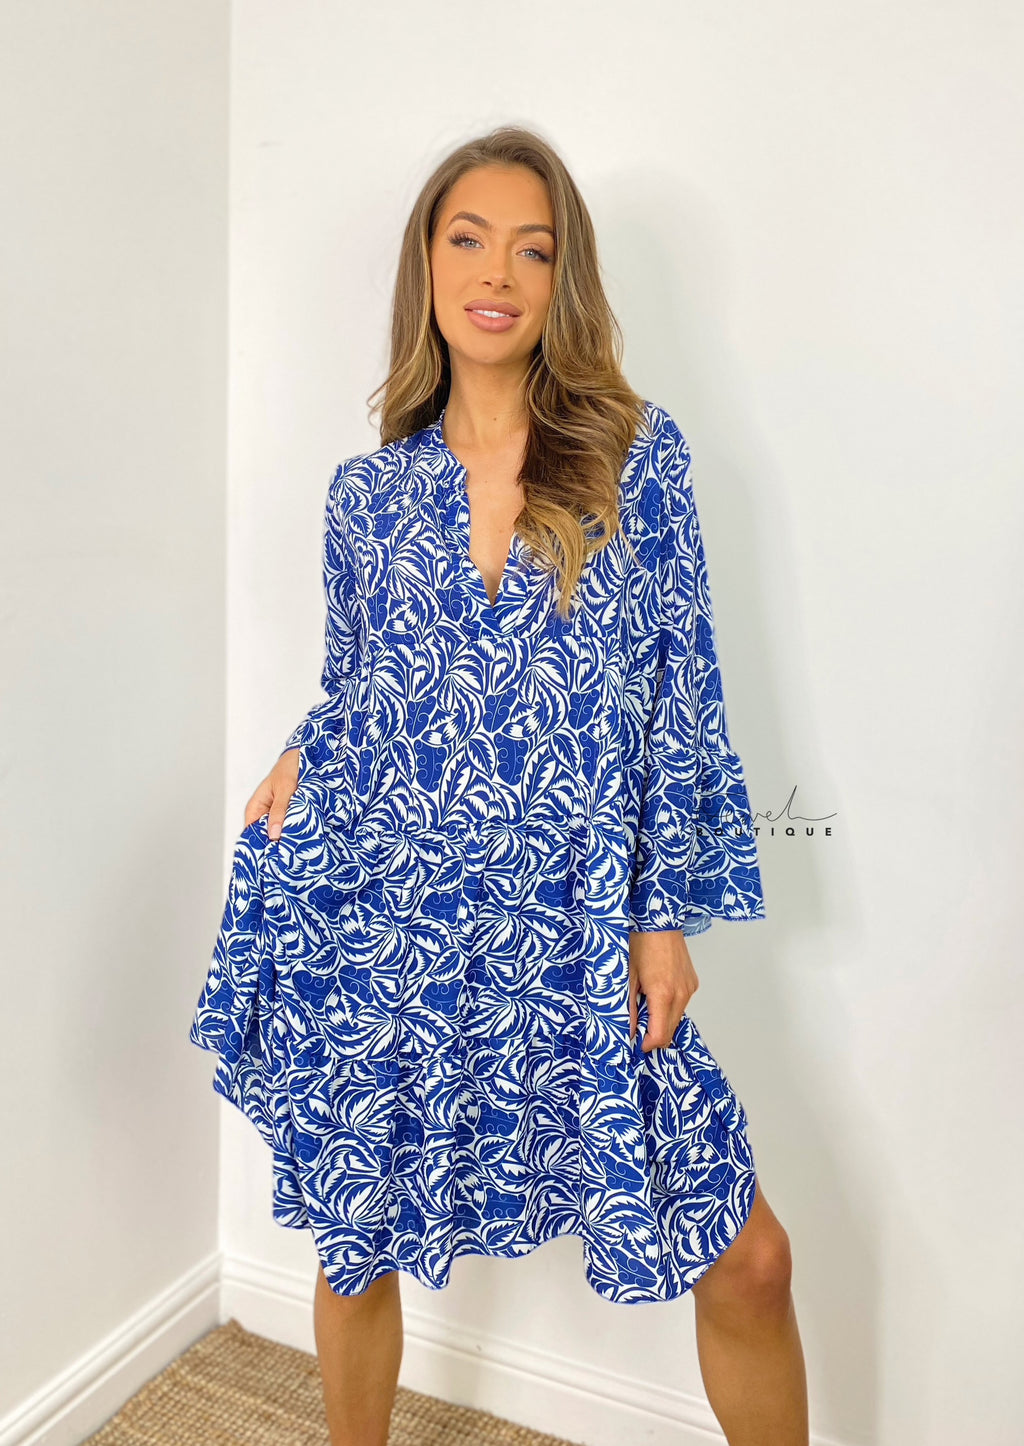 Women's royal blue printed tiered midi dress